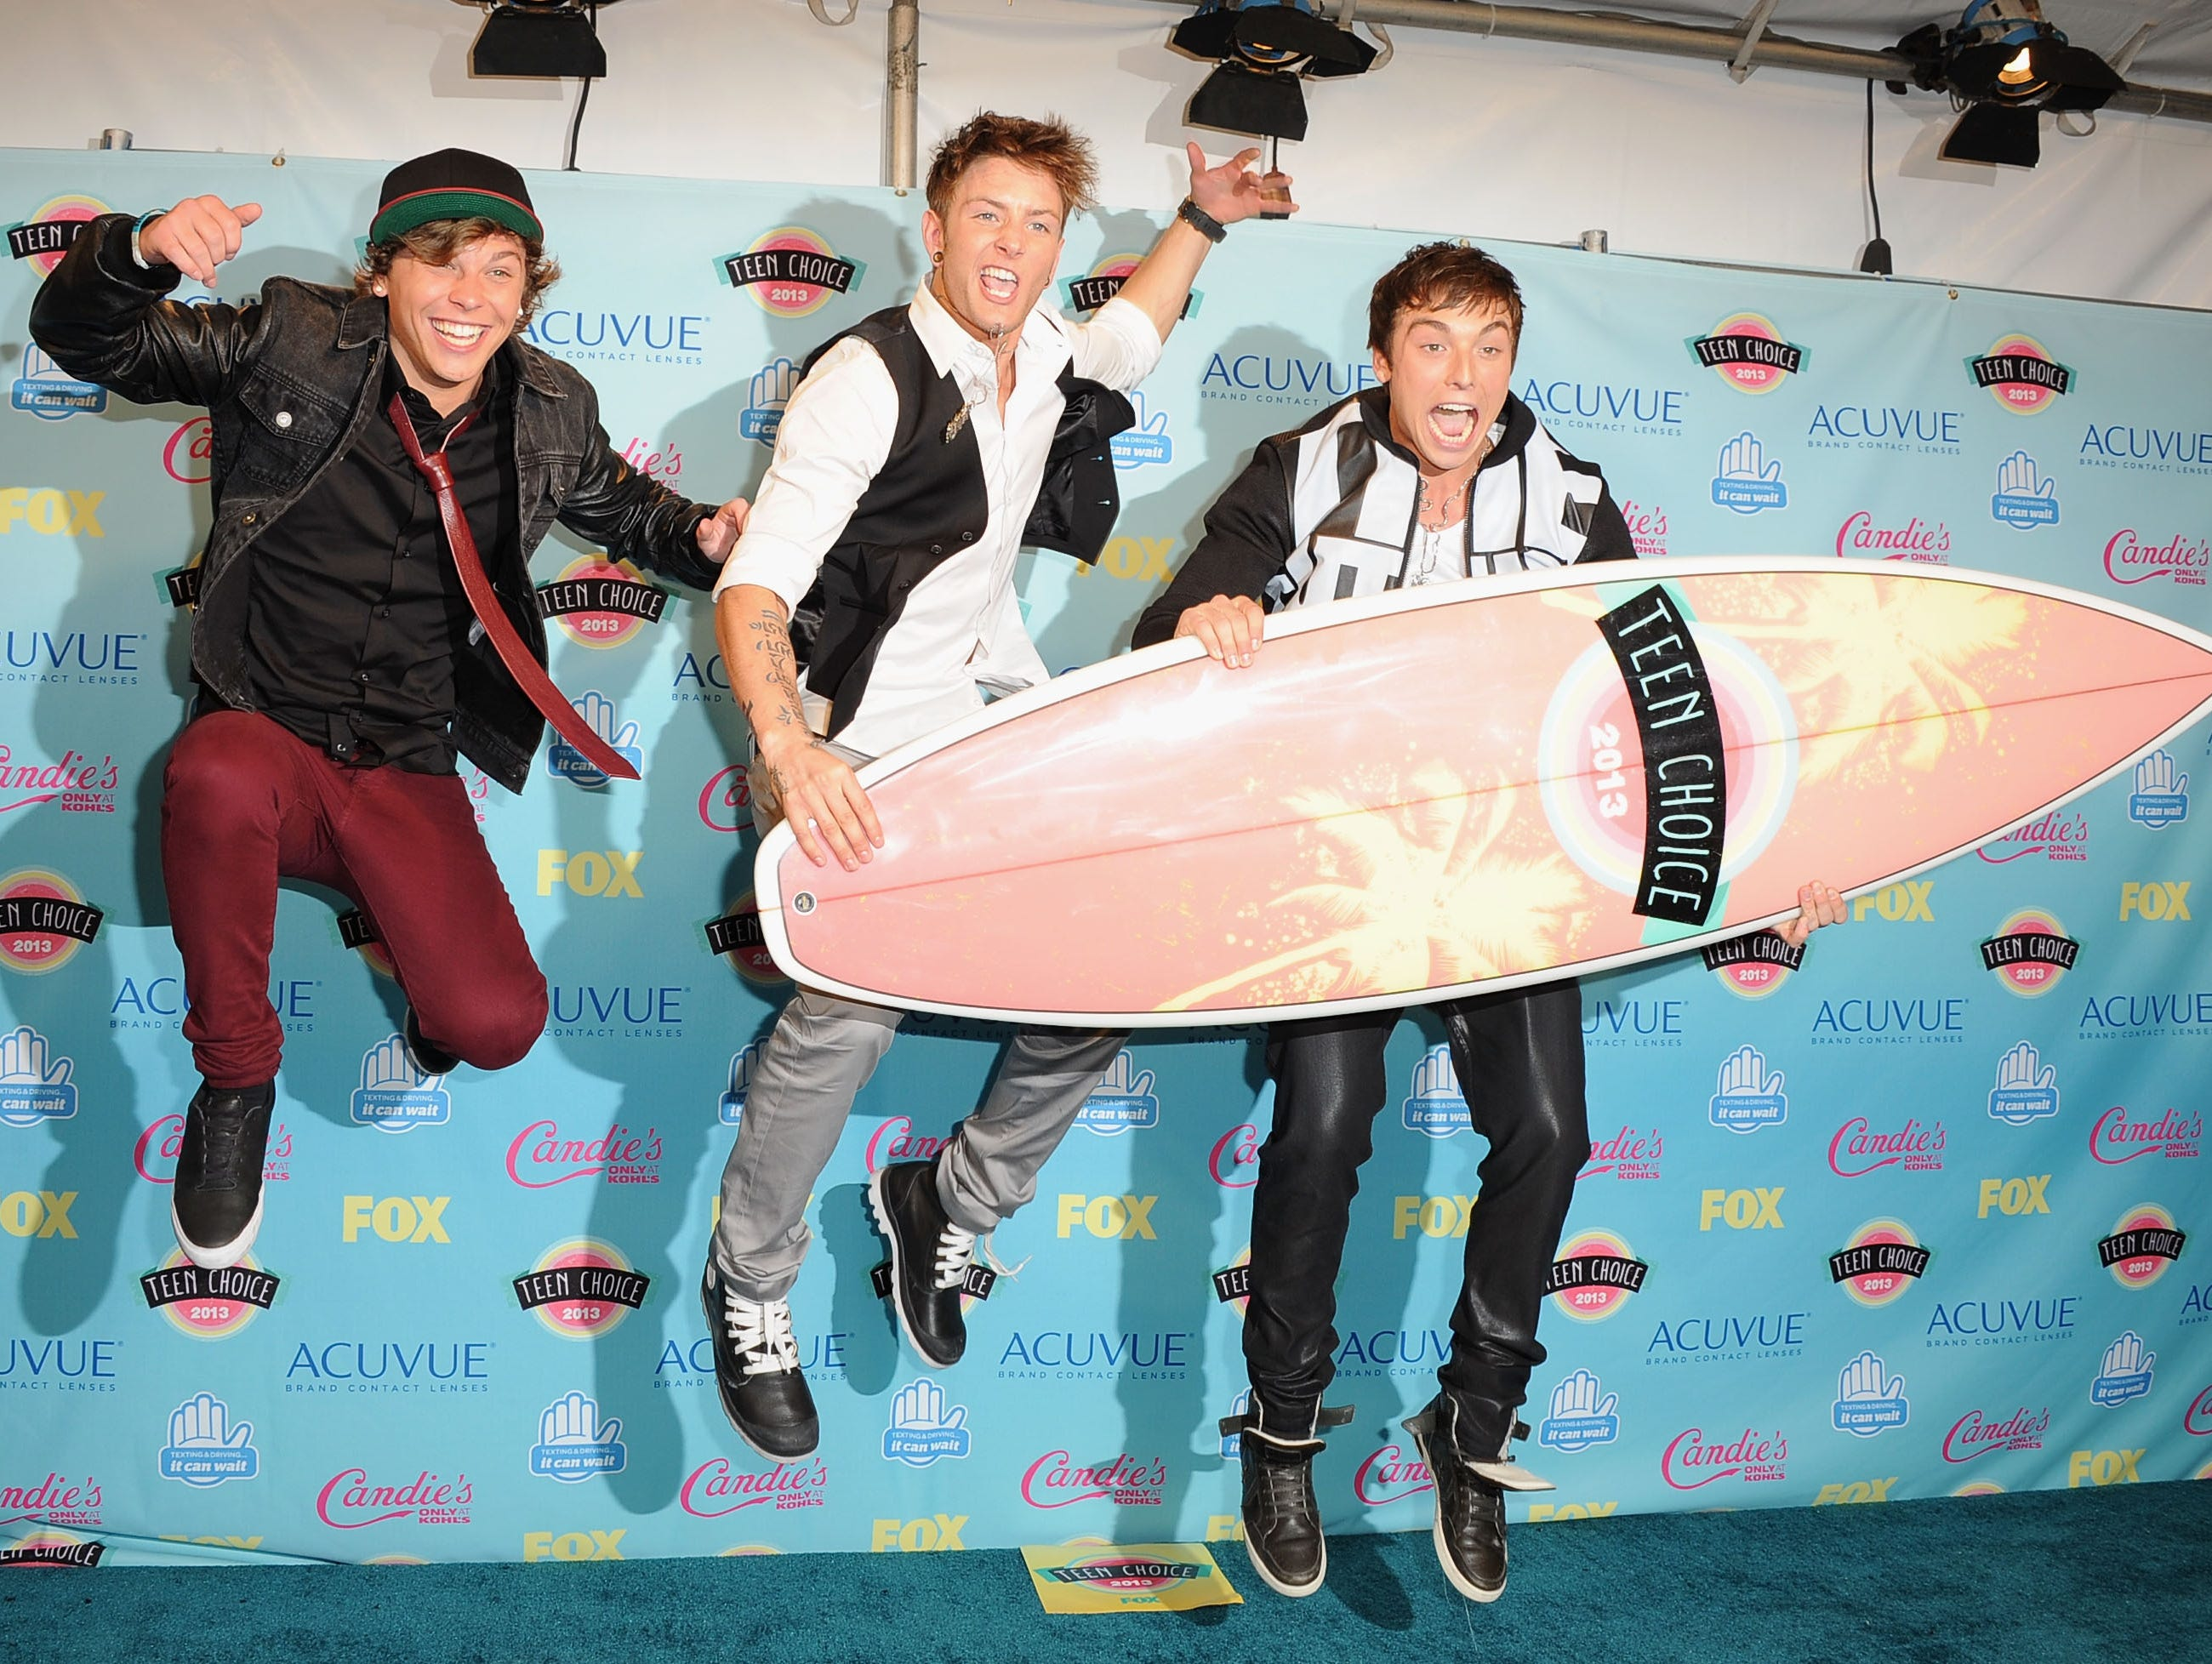 Keaton Stromberg, Drew Chadwick, and Wesley Stromberg of Emblem3 pose in the press room.